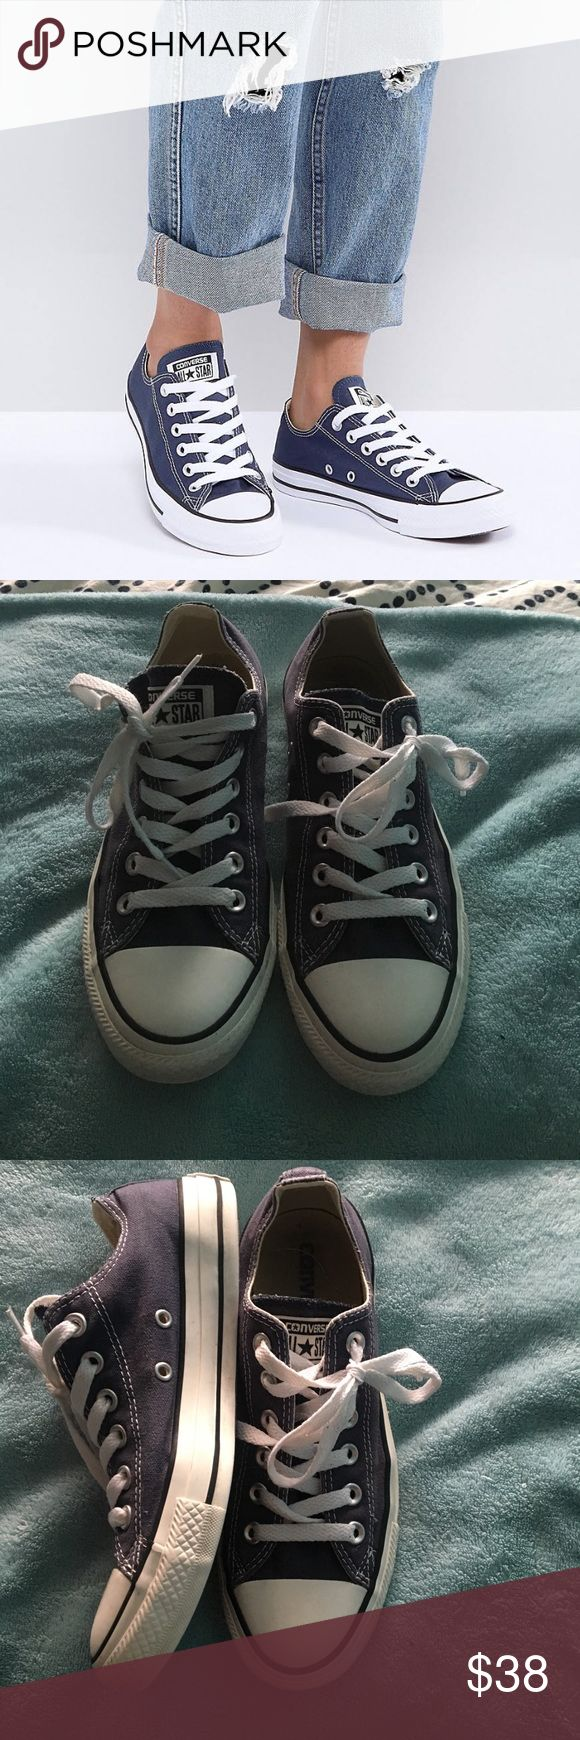 Navy Converse All Star Low Top Excellent condition all star low tops! Super cute and fit Women's Size 8, Men's Size 6. Goes great with every outfit! Converse Shoes Sneakers